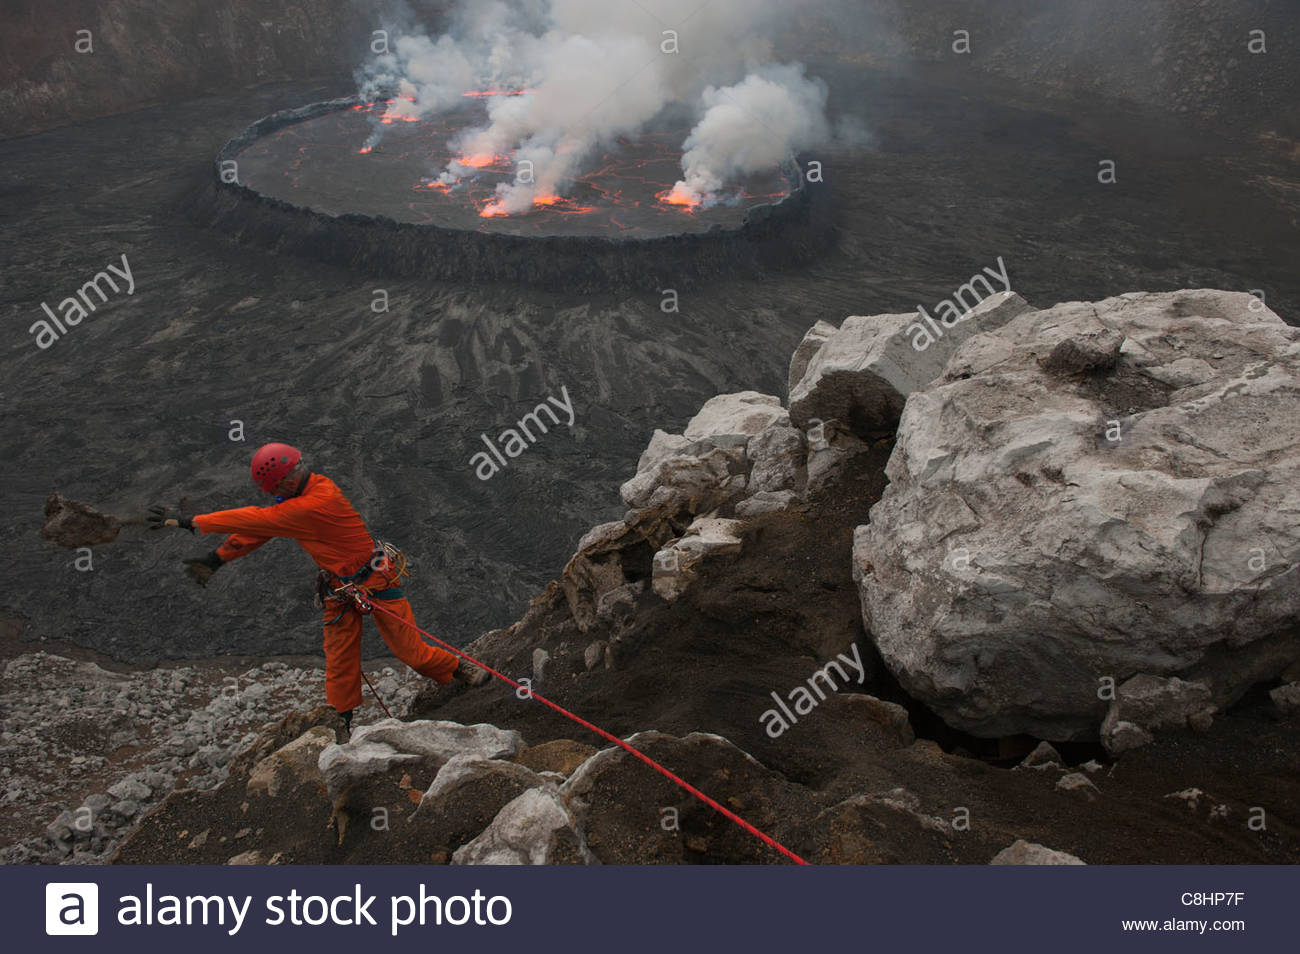 A volcanologist approaches an active lava lake in Nyiragongo volcano. - Stock Image